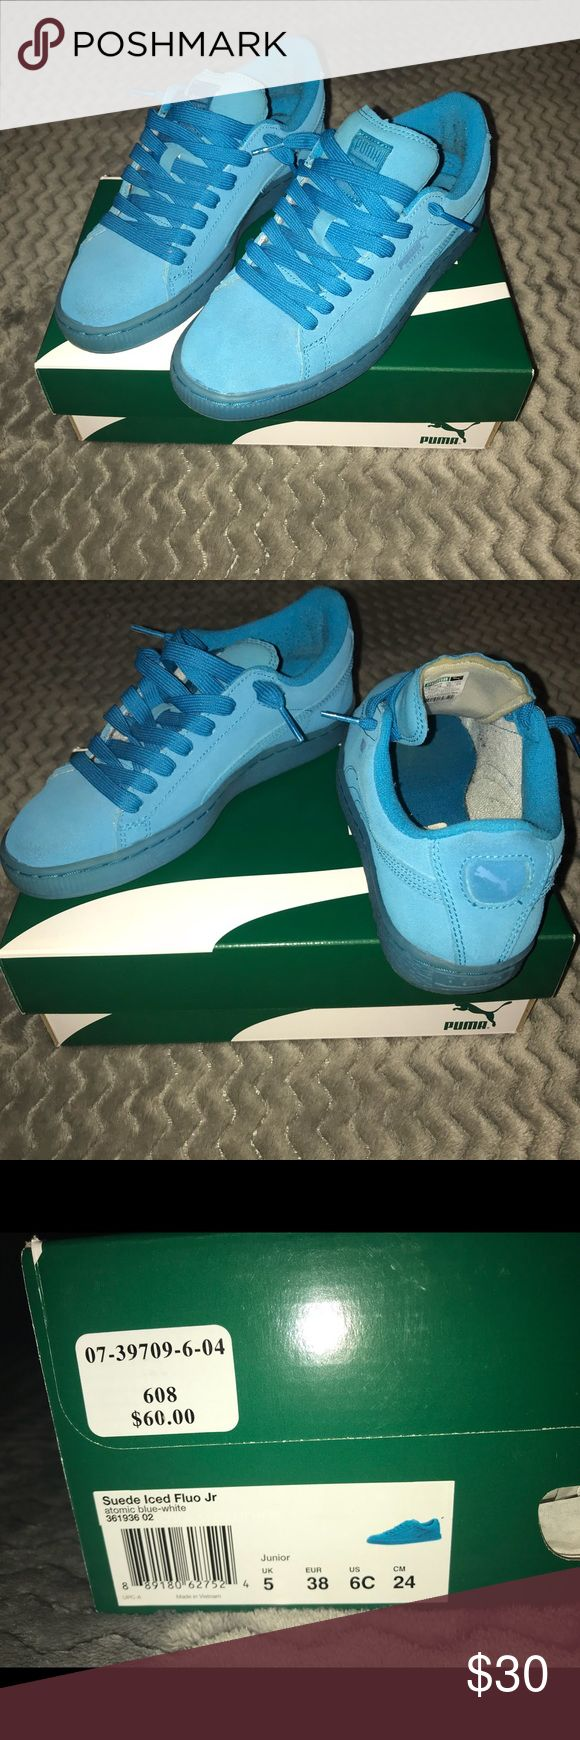 Blue Puma Suede's❄️💙. 📍 These Pumas are in a Junior size!  📍Good condition. 📍no harsh creasing. 📍still have the box they came in. 📍If you need me to put on hold for you I will but after a week I won't hold it.  ‼️If anyone has any additional questions ask me and I'll get back to you asap‼️🙂. Puma Shoes Sneakers